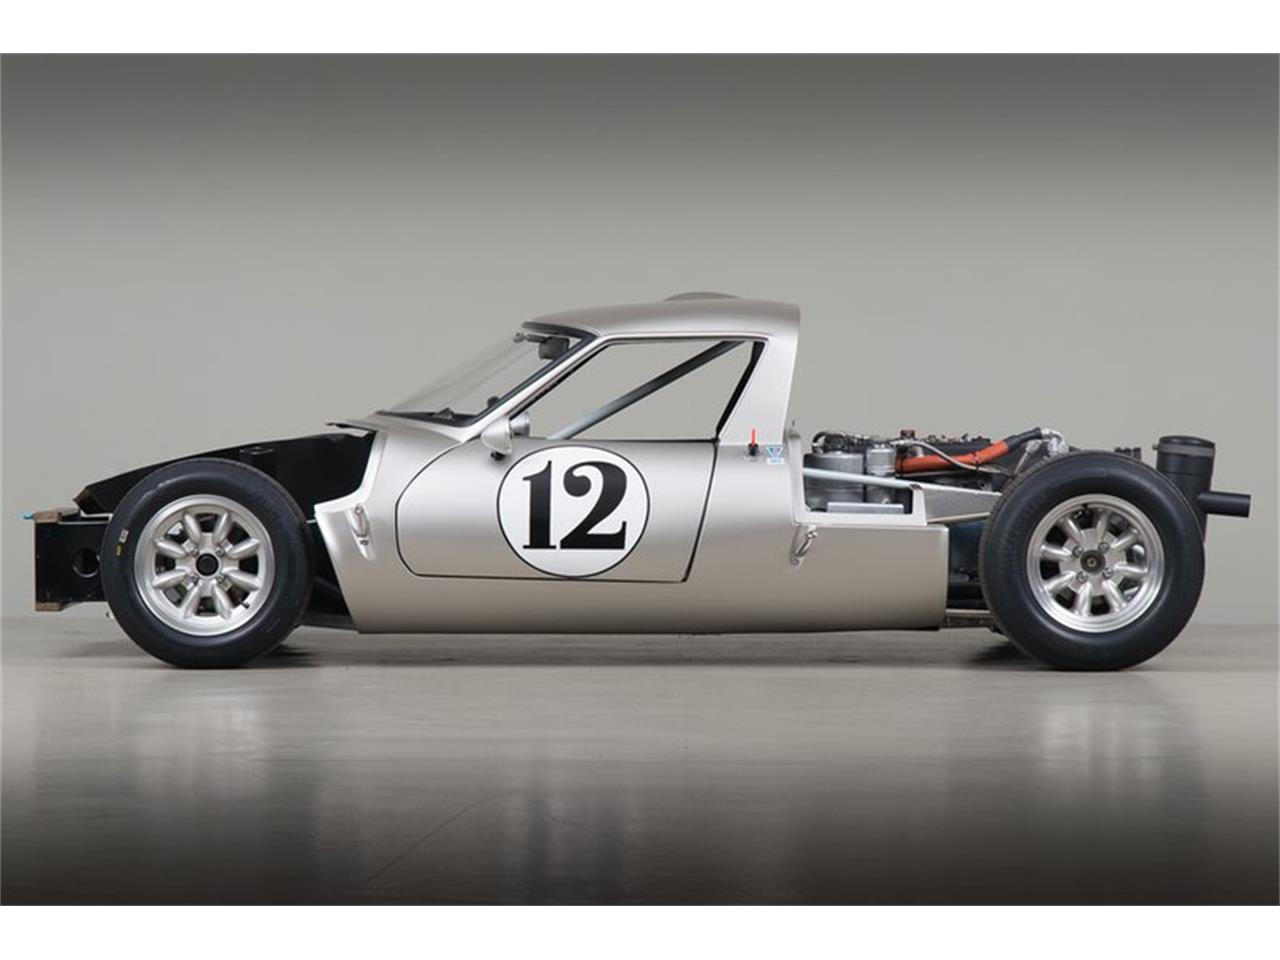 1967 Ginetta G12 for sale in Scotts Valley, CA – photo 6